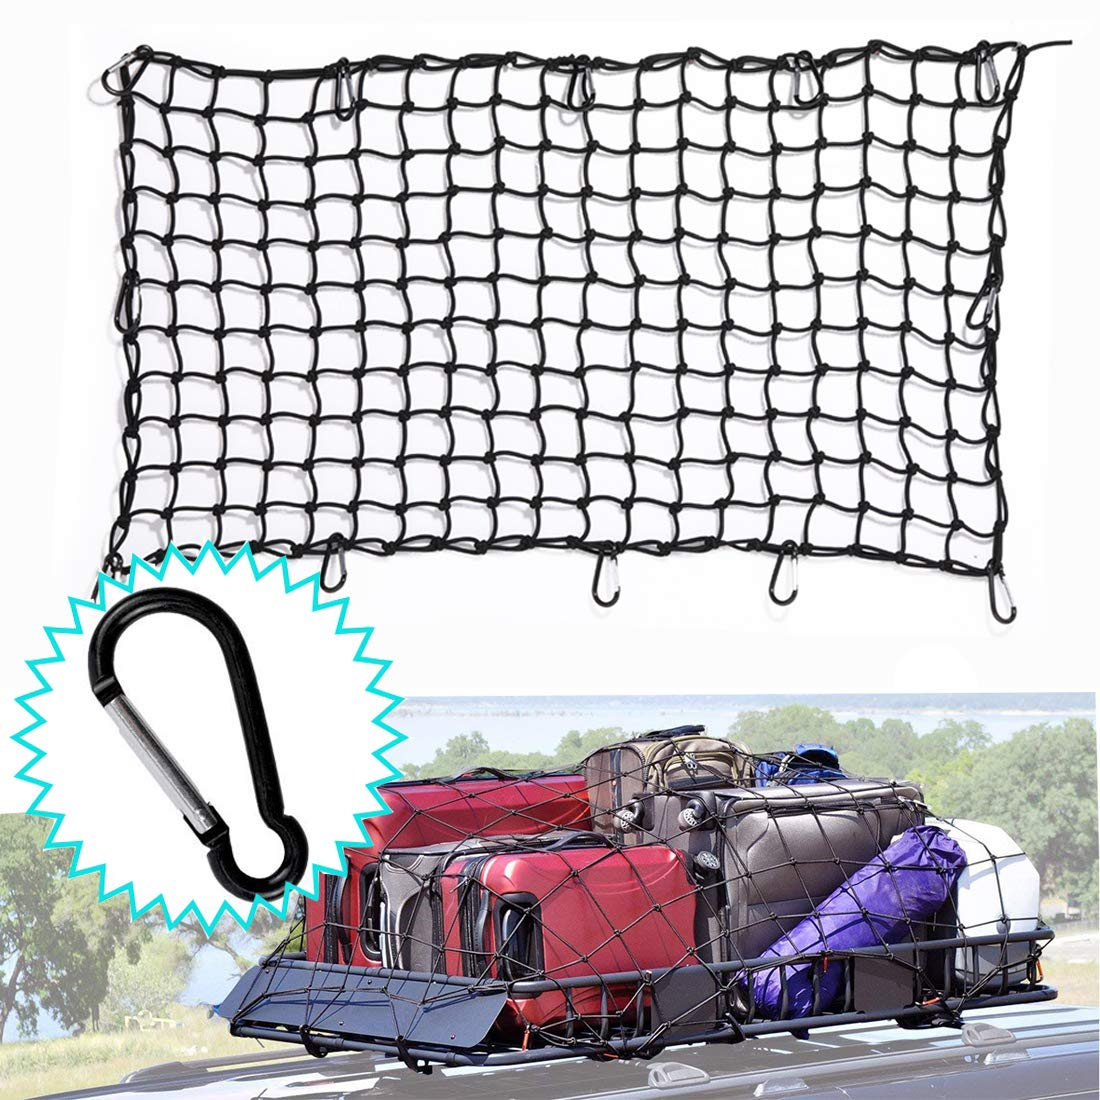 Cargo Net 2' X 3.4' Heavy Duty Truck Bed Bungee Nets Stretches to 3.2' X 5.8' with 12pcs D Shape Aluminum Carabiners Universal for Pickup Truck SUV Trailer Boat RV BOKA